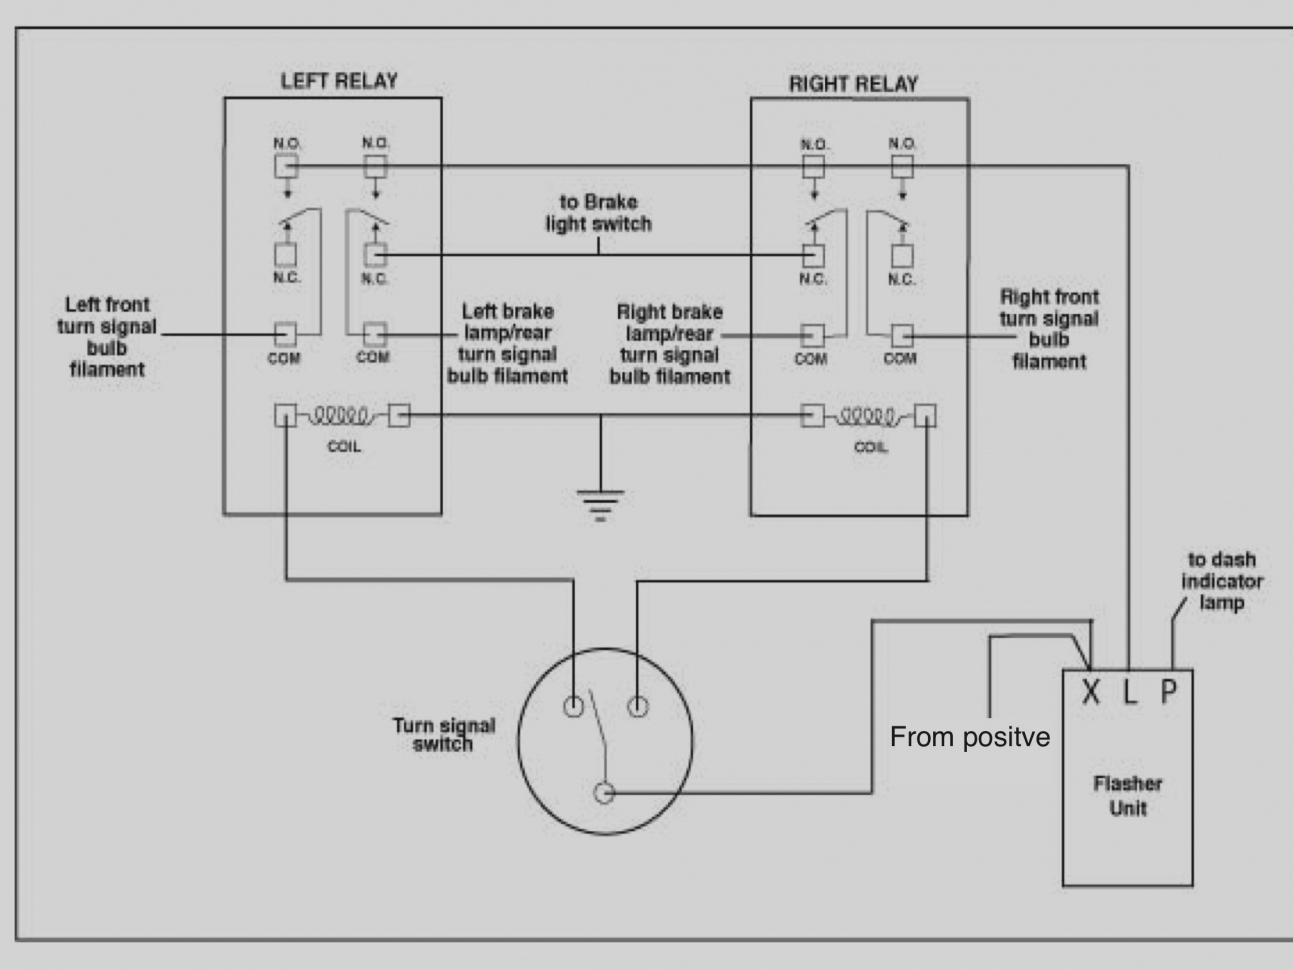 2014 polaris wiring diagram wiring schematics Van Hool Wiring Diagram